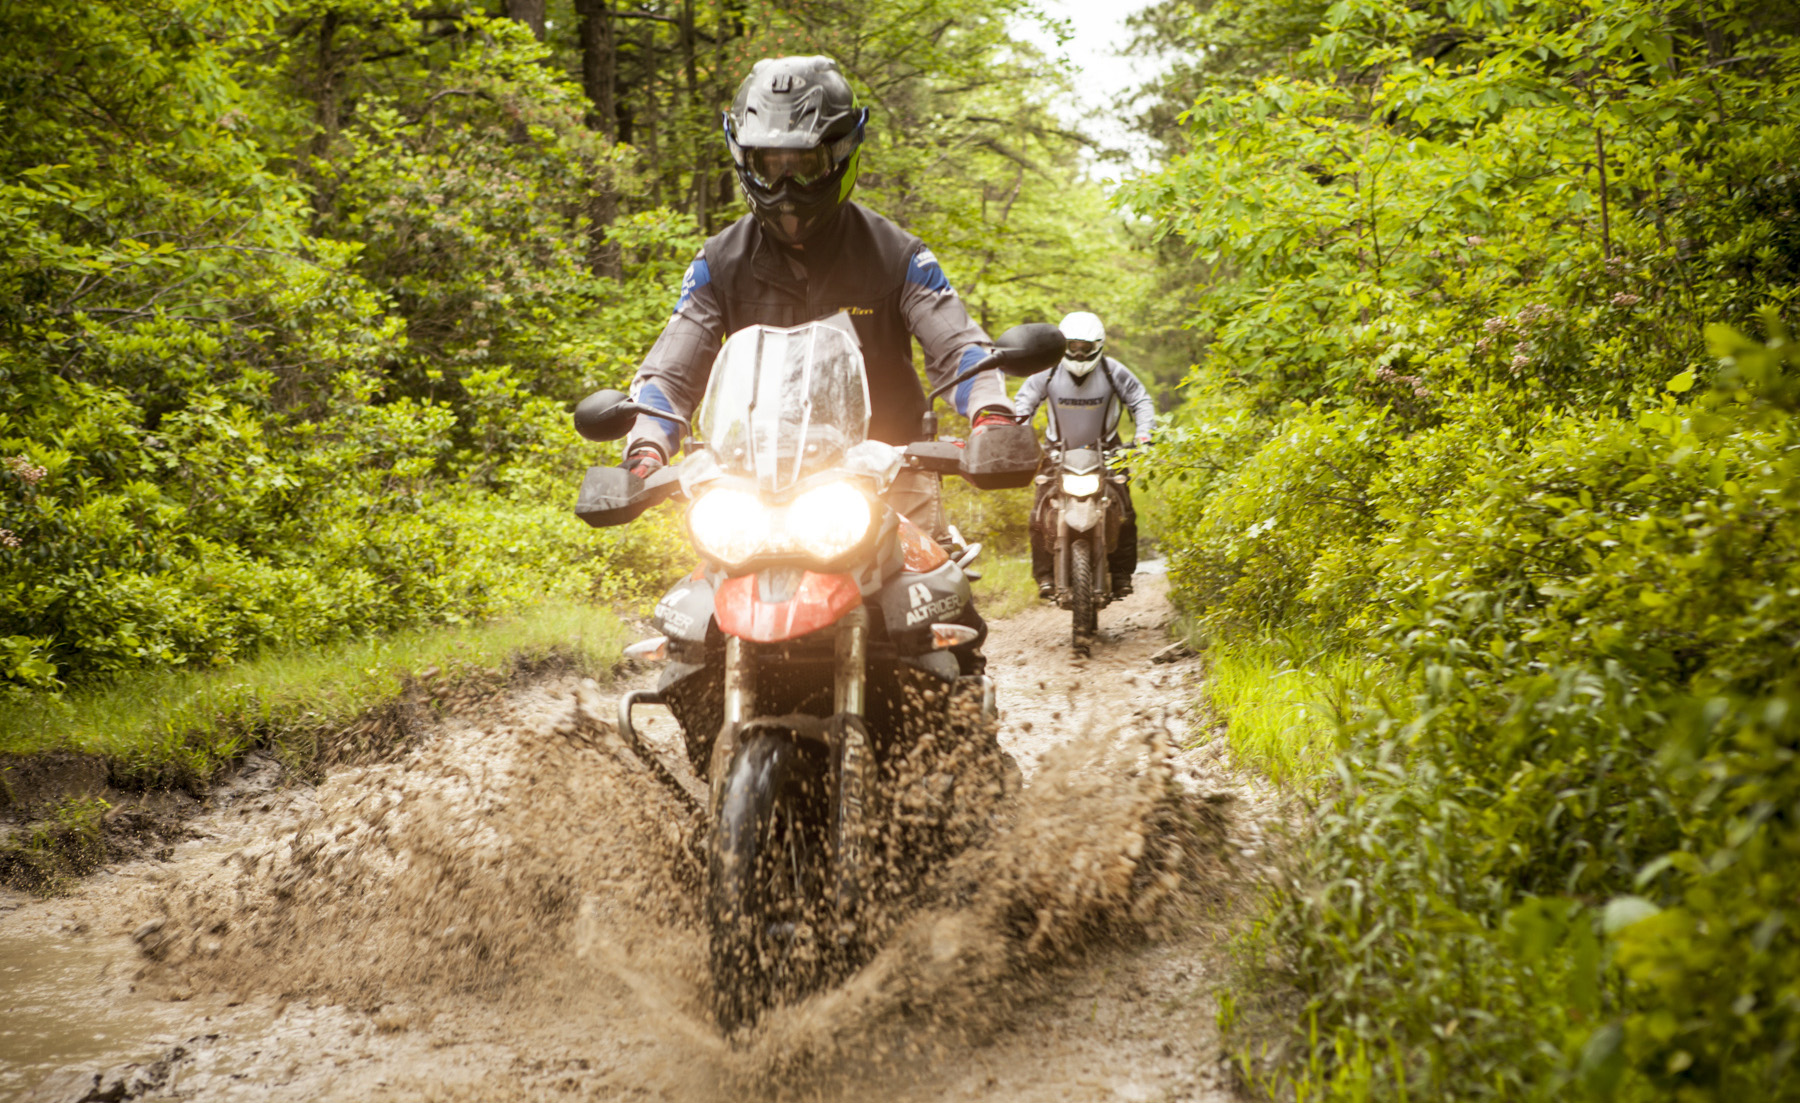 Altrider Celebrates The Freedom To Ride On Trails With 6th